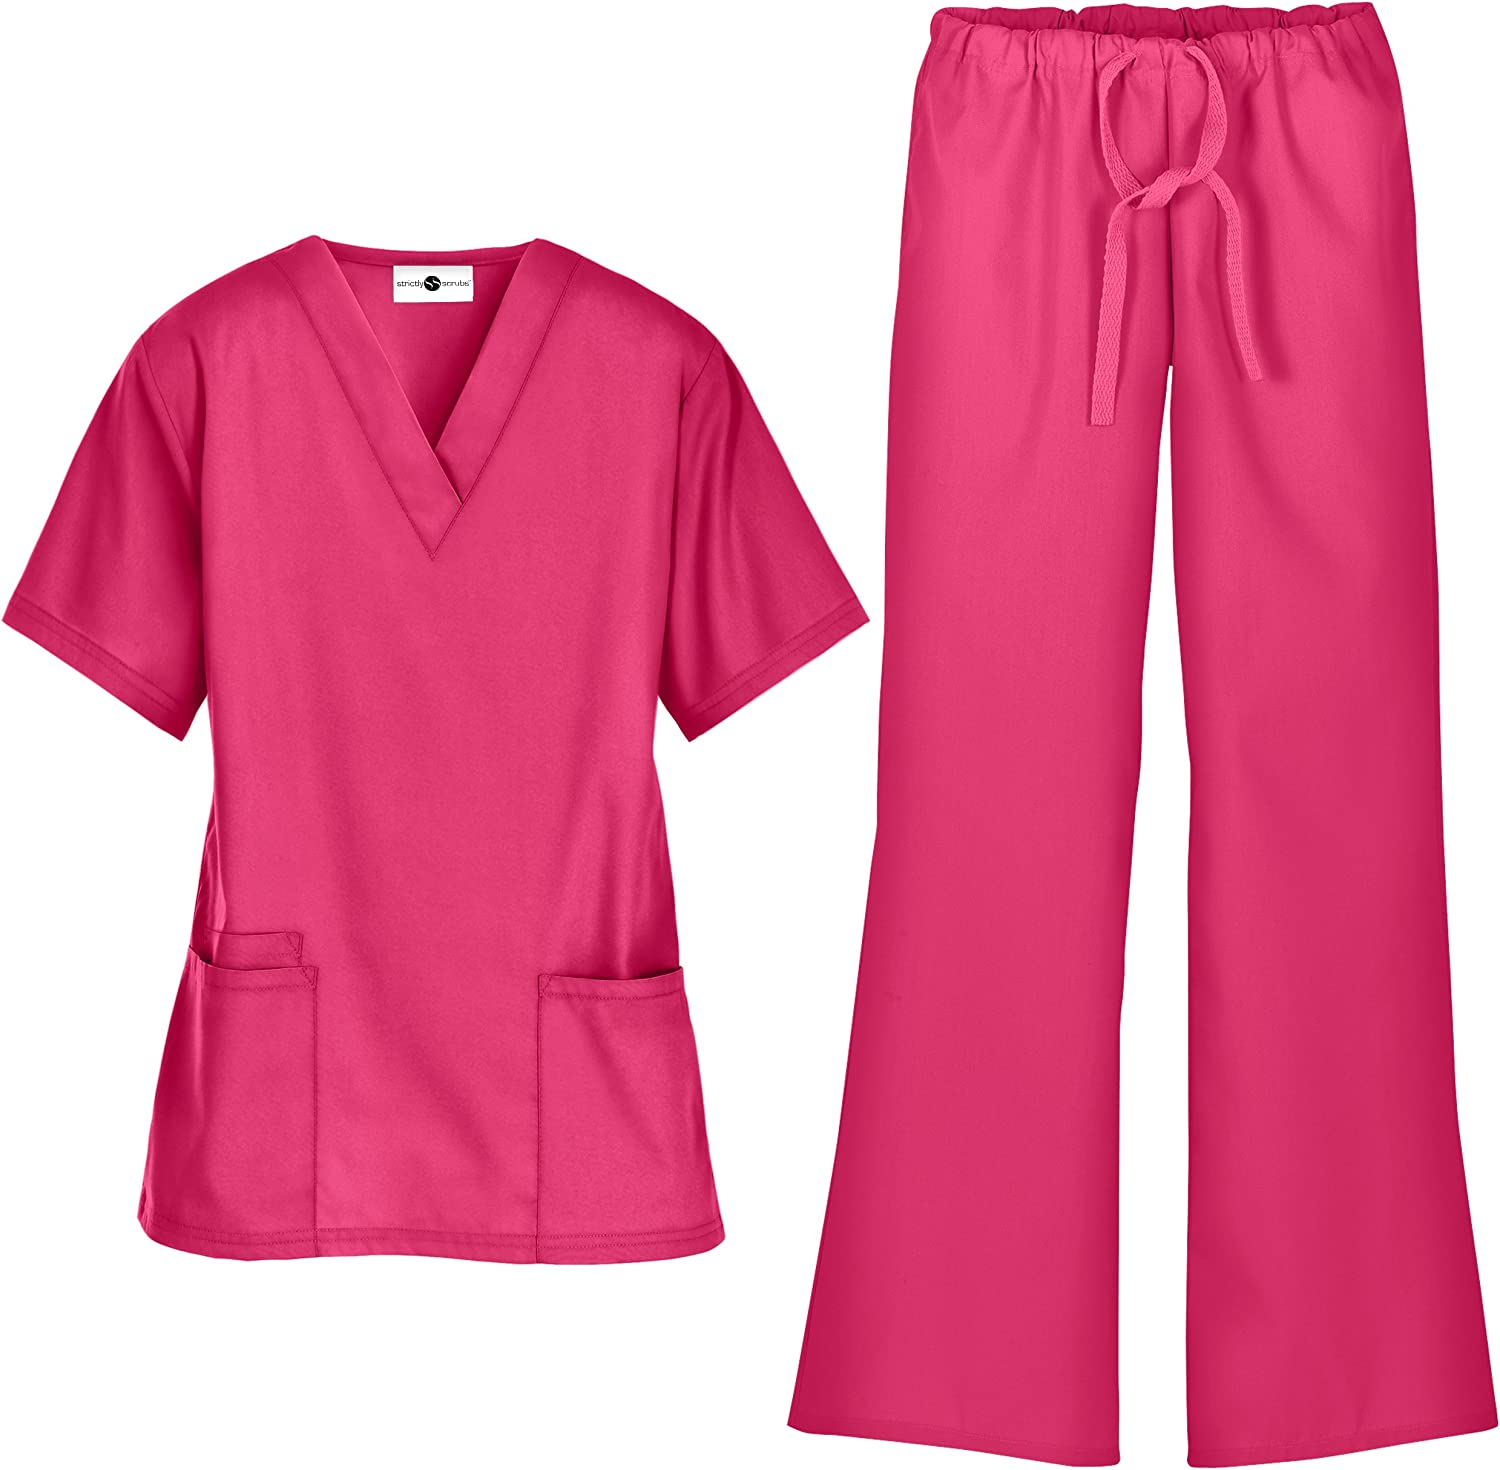 Women's Scrub Set  Includes VNeck Top and Drawstring Pant (XS3X, 7 colors)